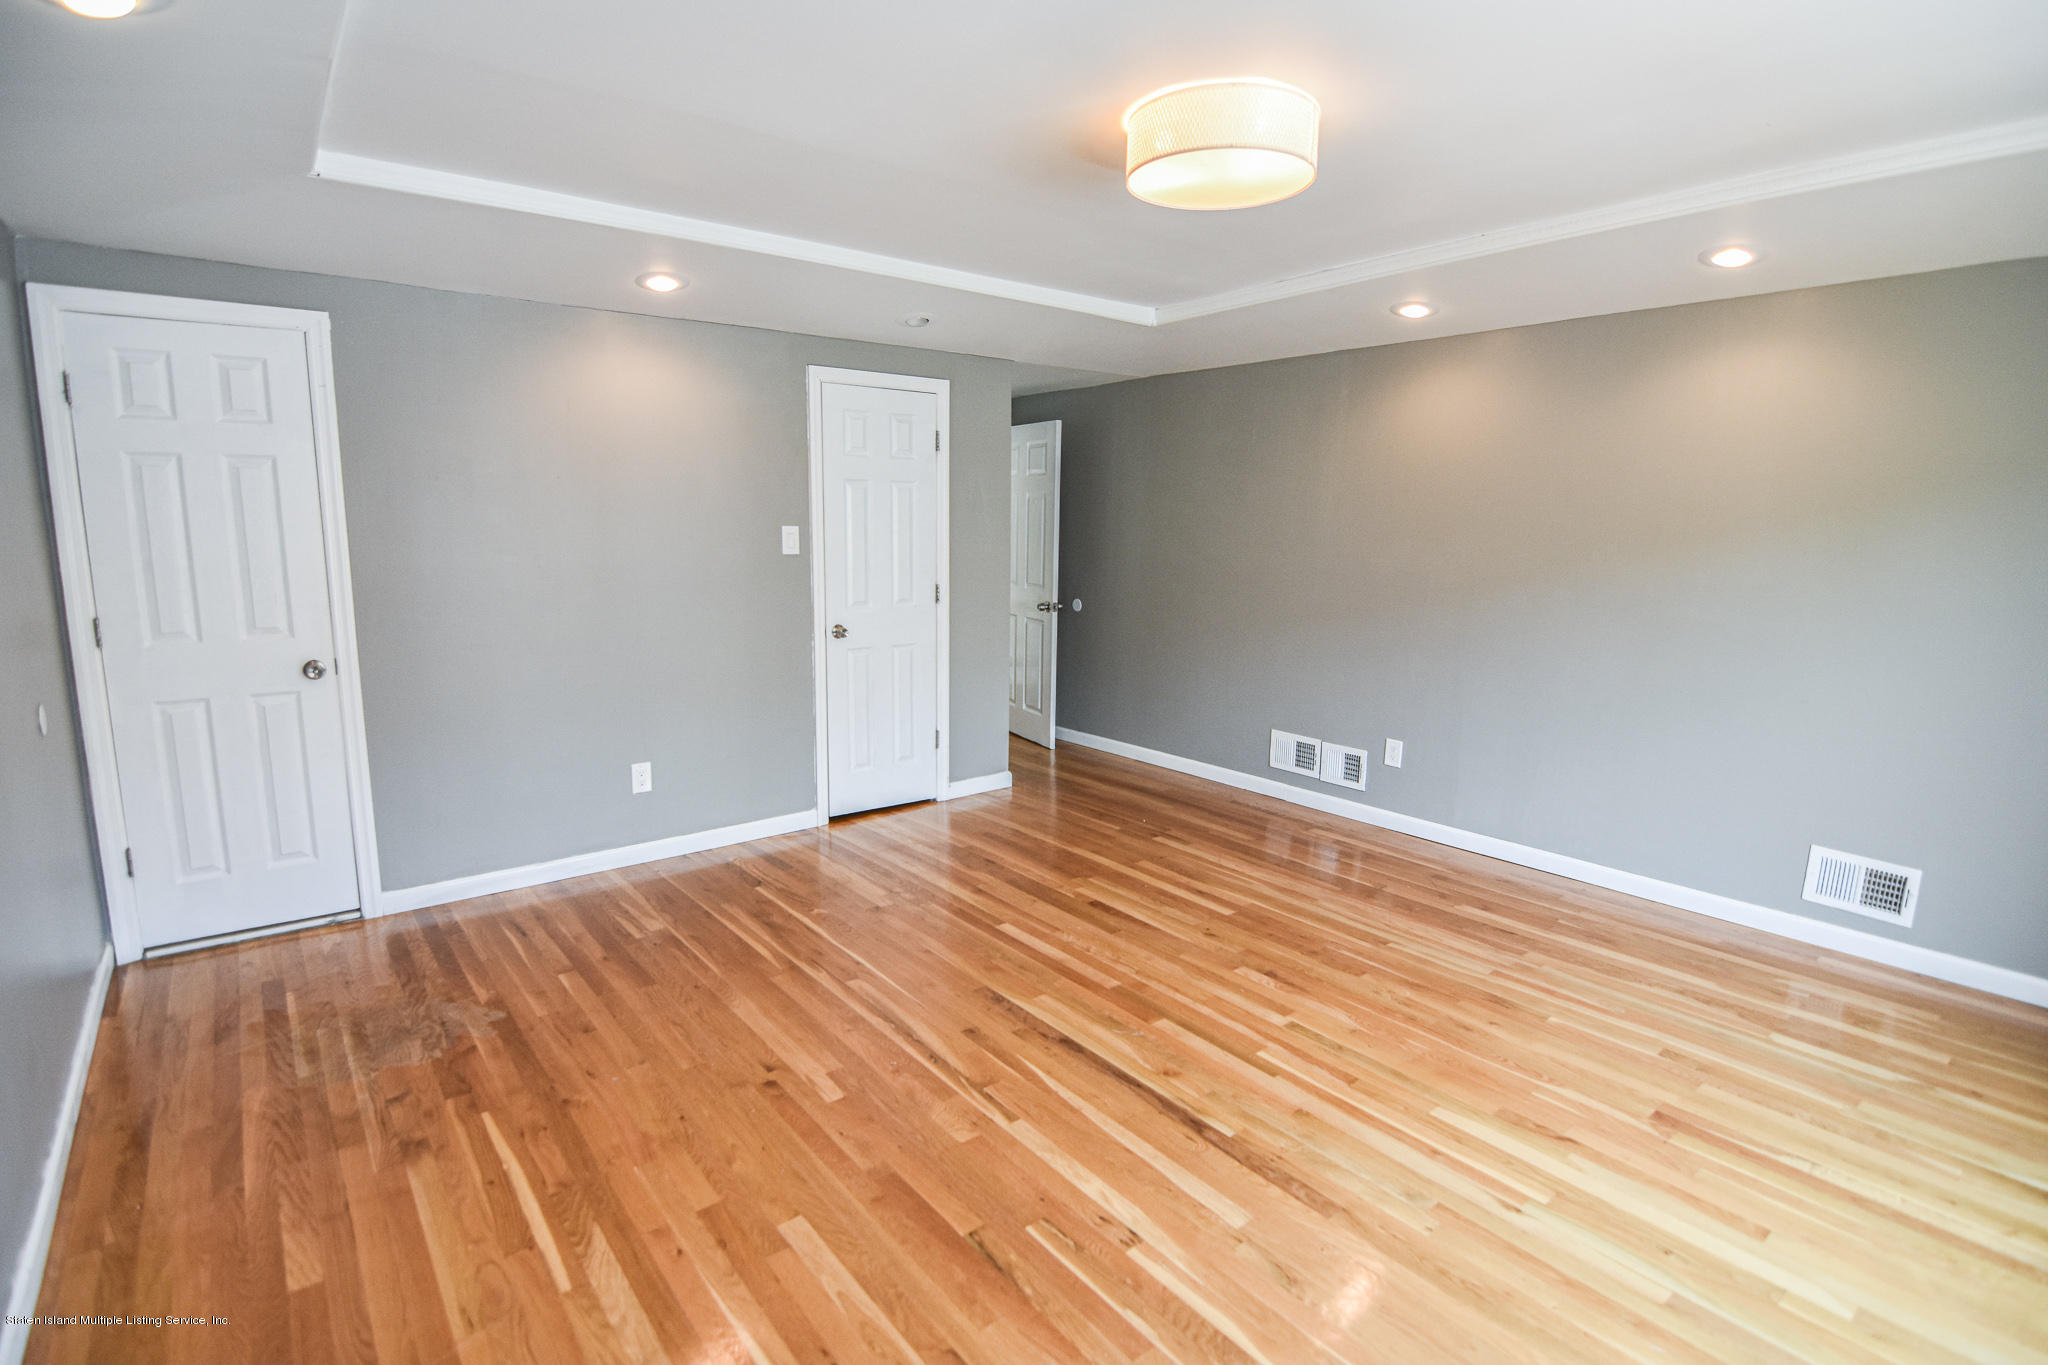 Single Family - Semi-Attached 12 Ebey Lane  Staten Island, NY 10312, MLS-1131132-12